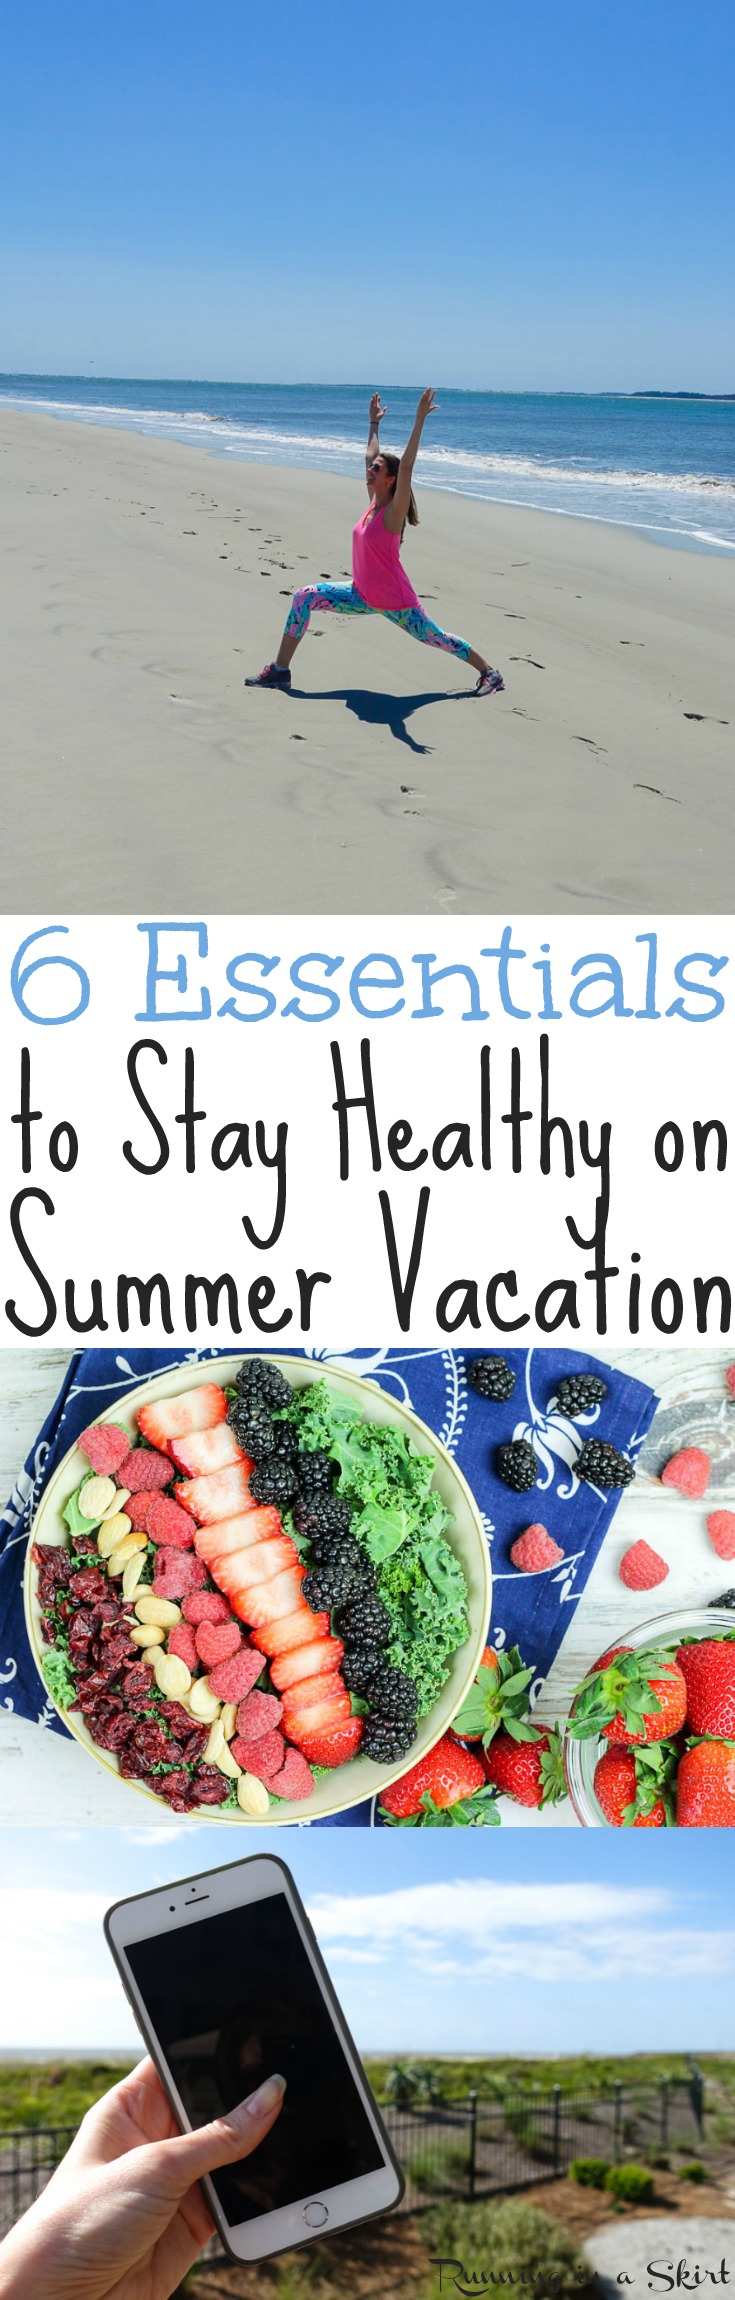 6 Essential Tips for Healthy Travel for the BEST Summer Vacation - including ideas to stay active on vacations for your health and to stay fit!  Also to enjoy clean eating meals and foods even on adventures.  Keep your gut health in check even when you are traveling. / Running in a Skirt AD via @juliewunder